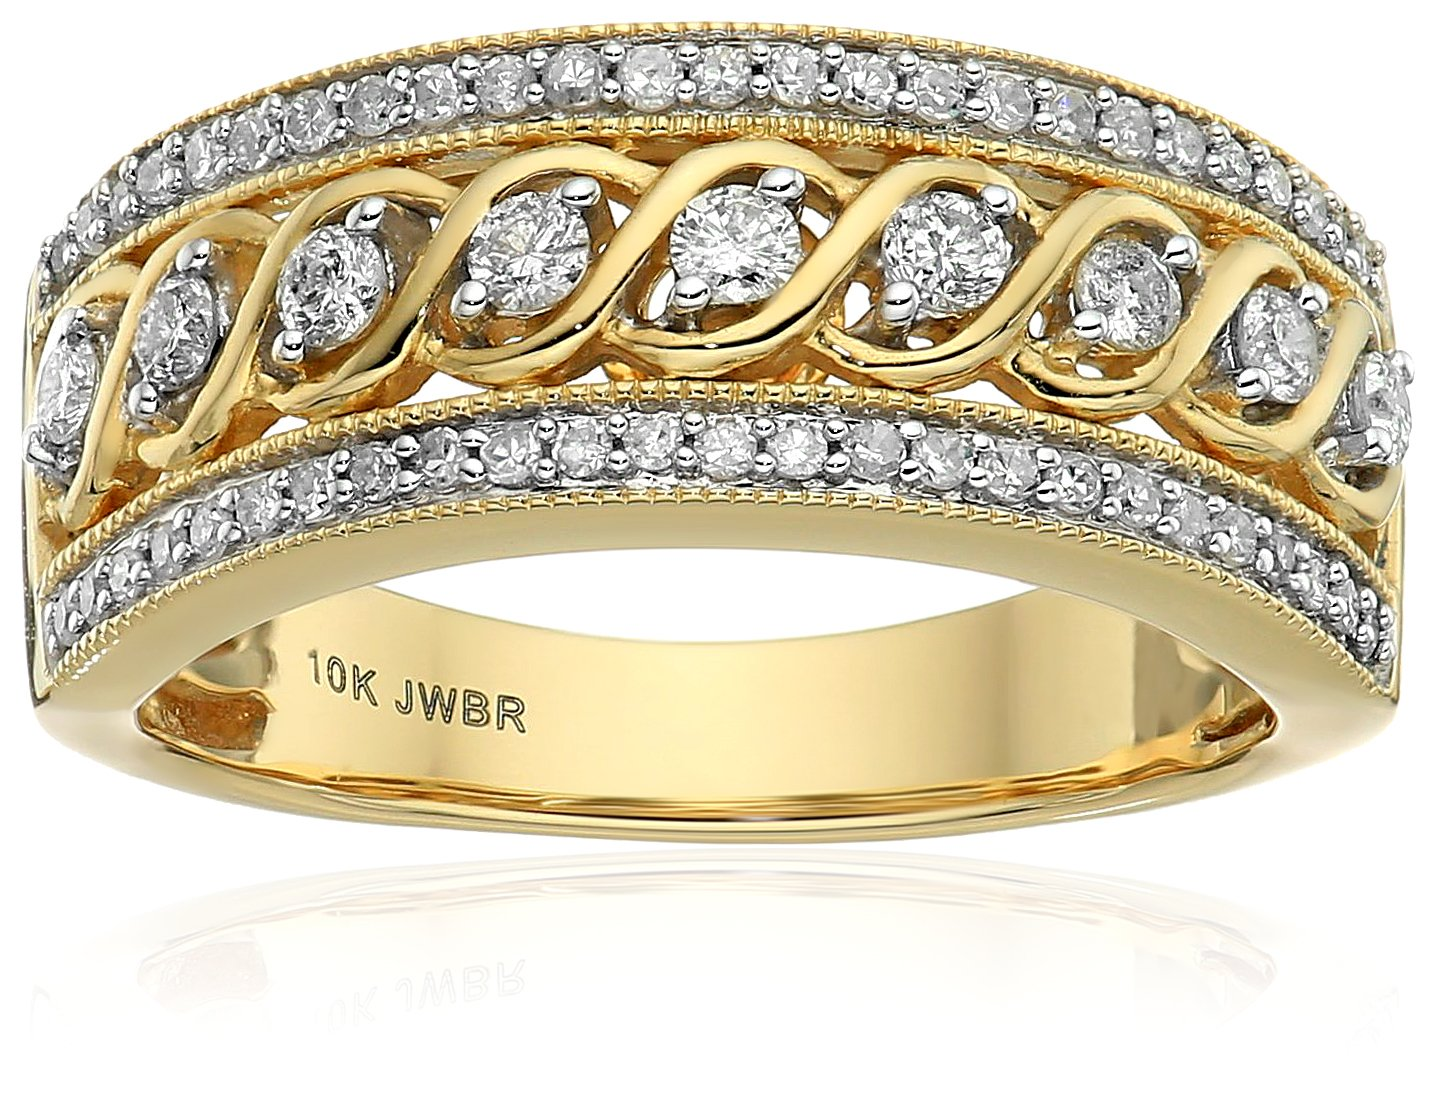 10k Yellow Gold Anniversary Ring (1/2 cttw), Size 7